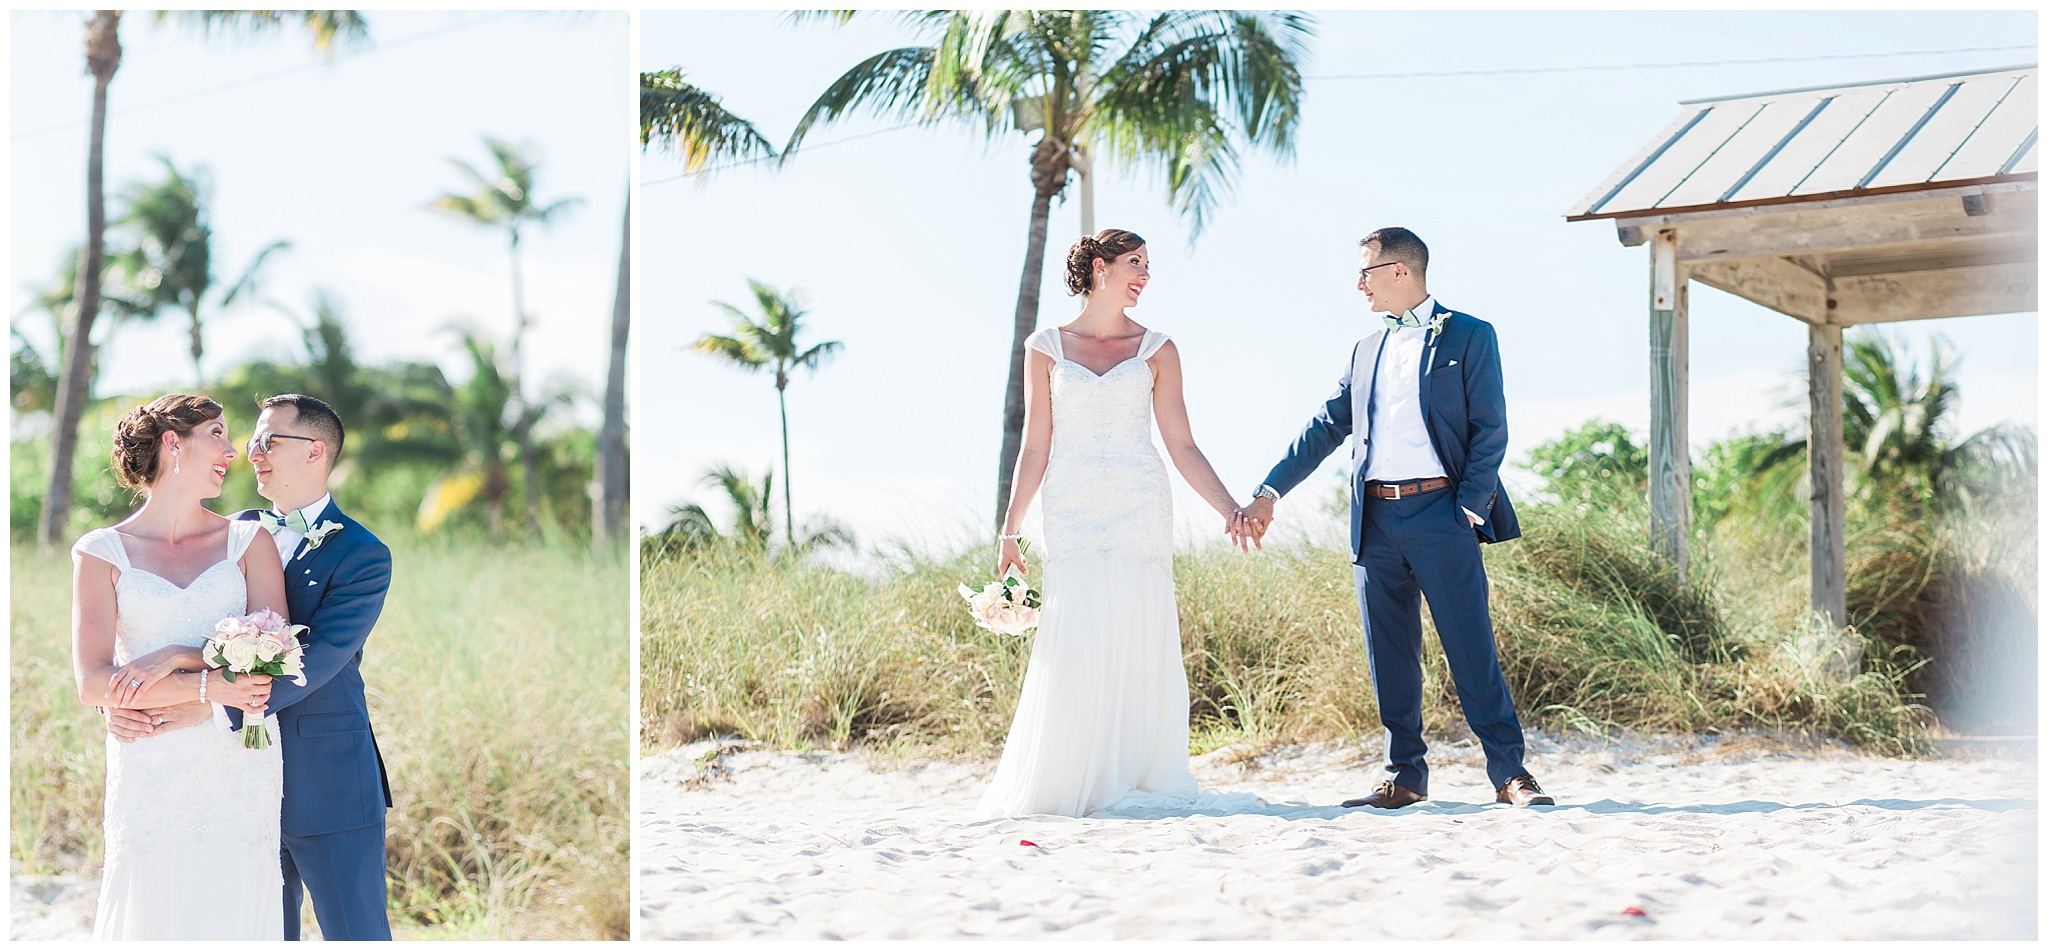 south florida wedding photographer- key west bride- key west wedding